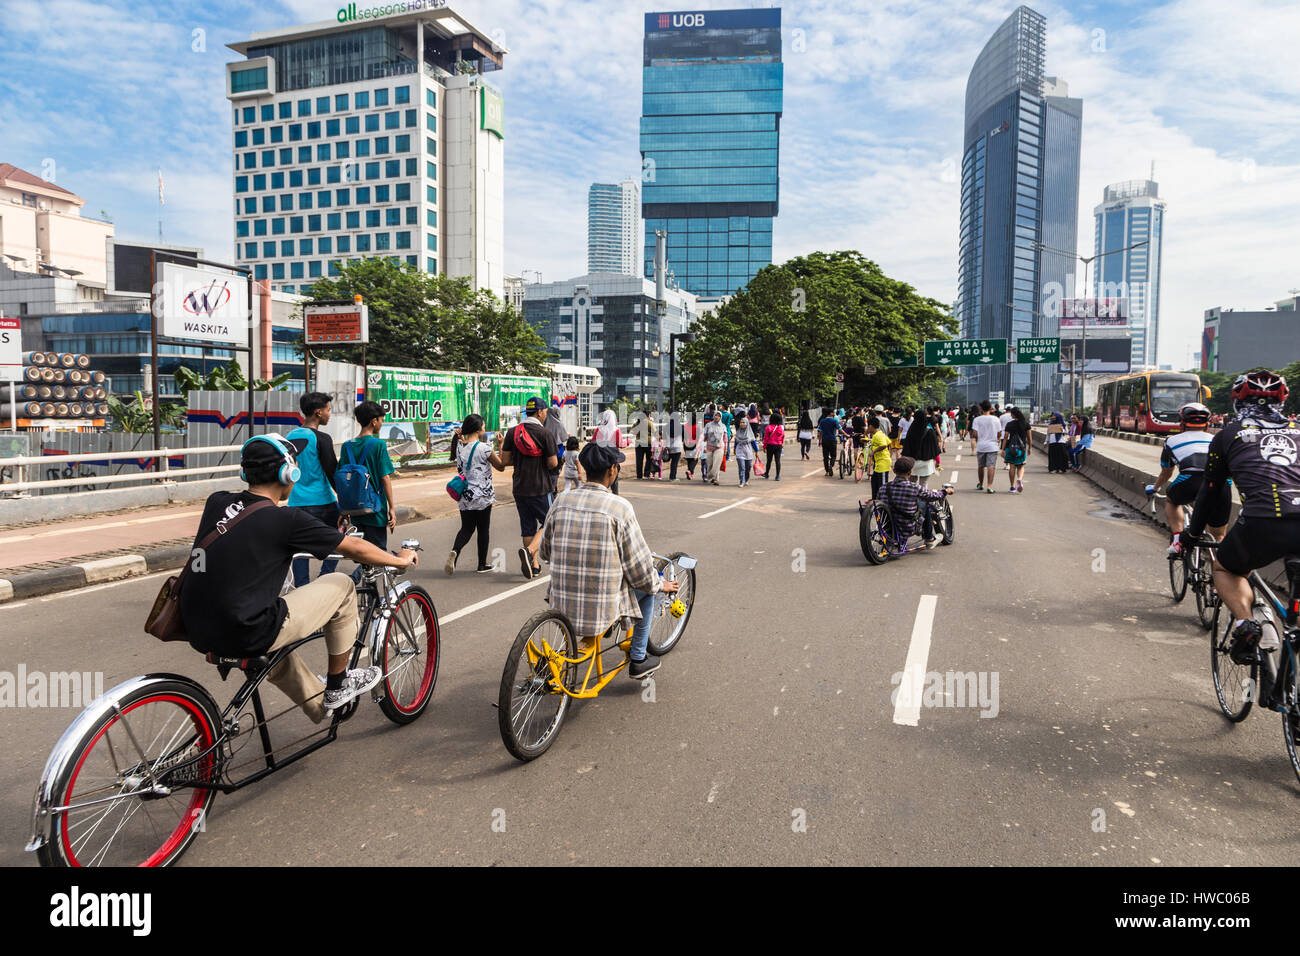 JAKARTA, INDONESIA - SEPTEMBER 25, 2016: Cyclists enjoy riding their custom made bike on car free day, which happens - Stock Image